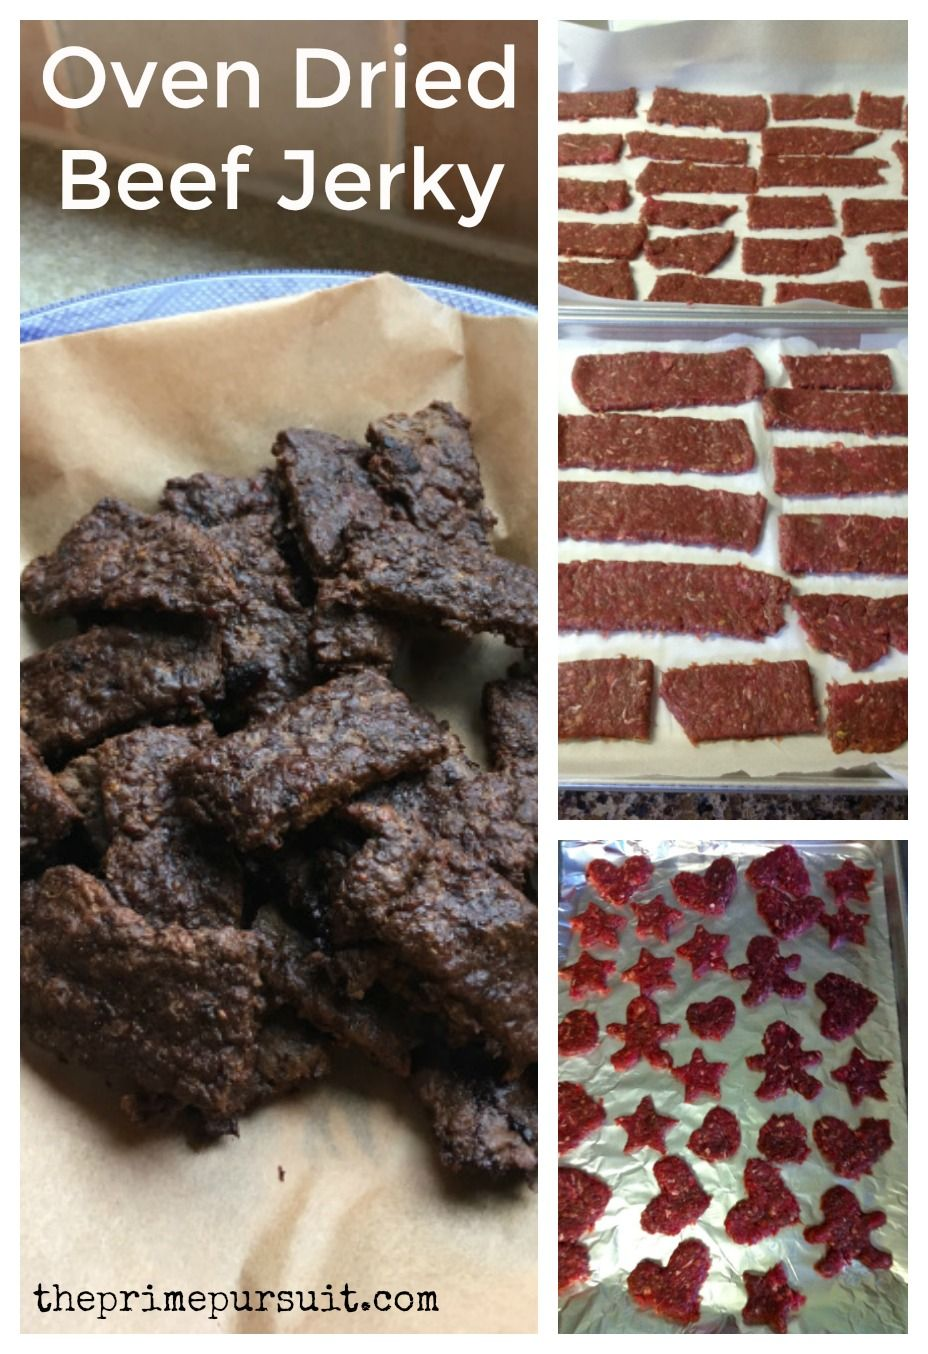 Home Made Oven Dried Beef Jerky Easy Whole 30 Snack Chemical Free Sugar Free No Equipment Needed Oven Dried Beef Jerky Beef Jerky Homemade Beef Jerky